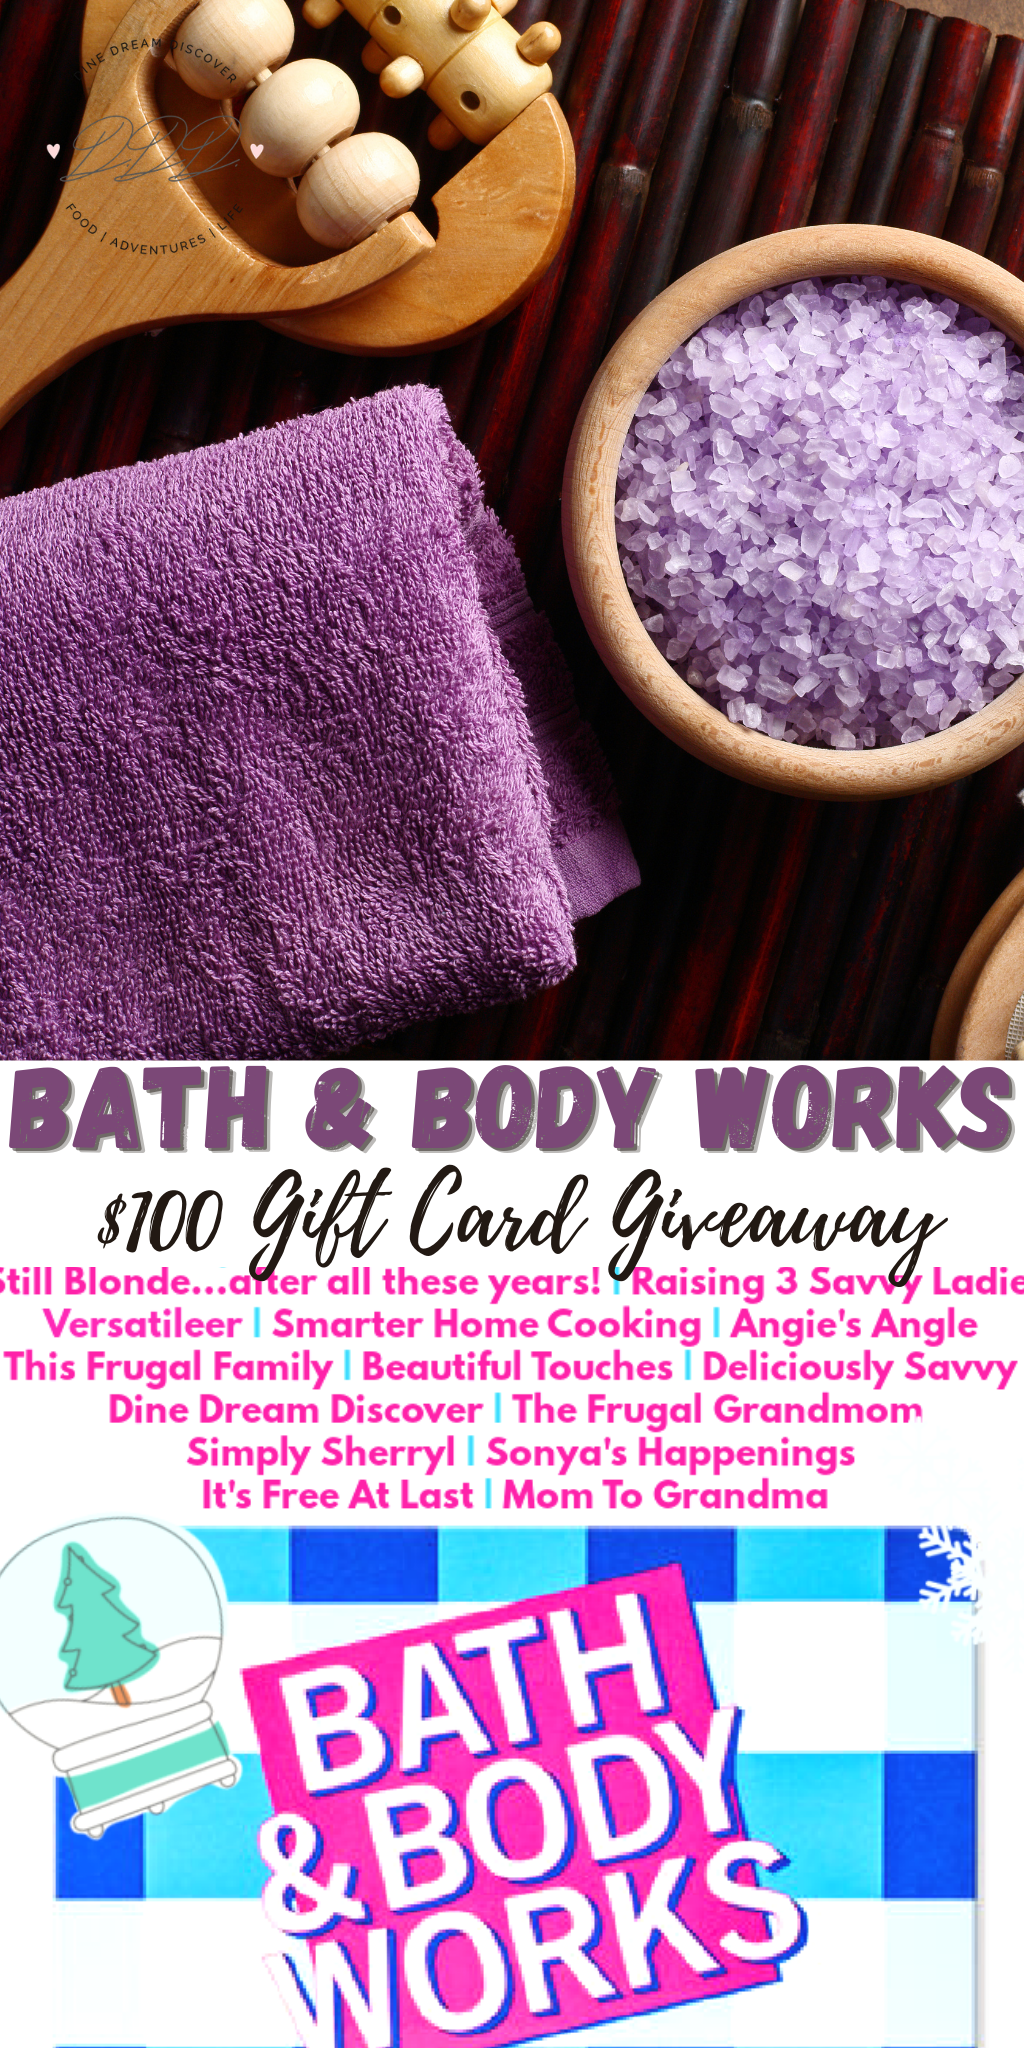 $100 Bath & Body Works Gift Card Giveaway (